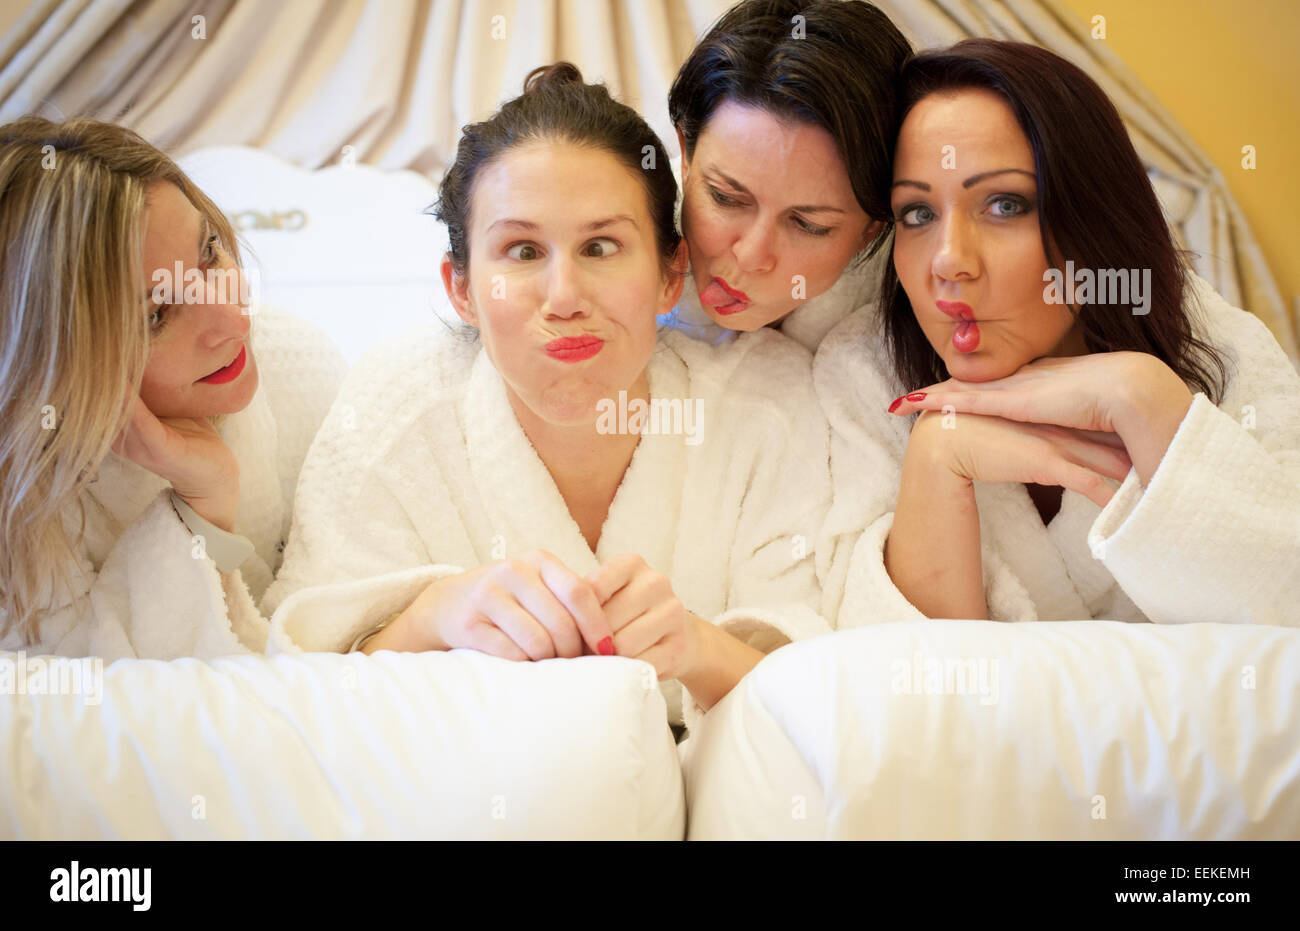 Group of attractive women in white robes in a luxury hotel messing about having fun on a health spa hen weekend Stock Photo